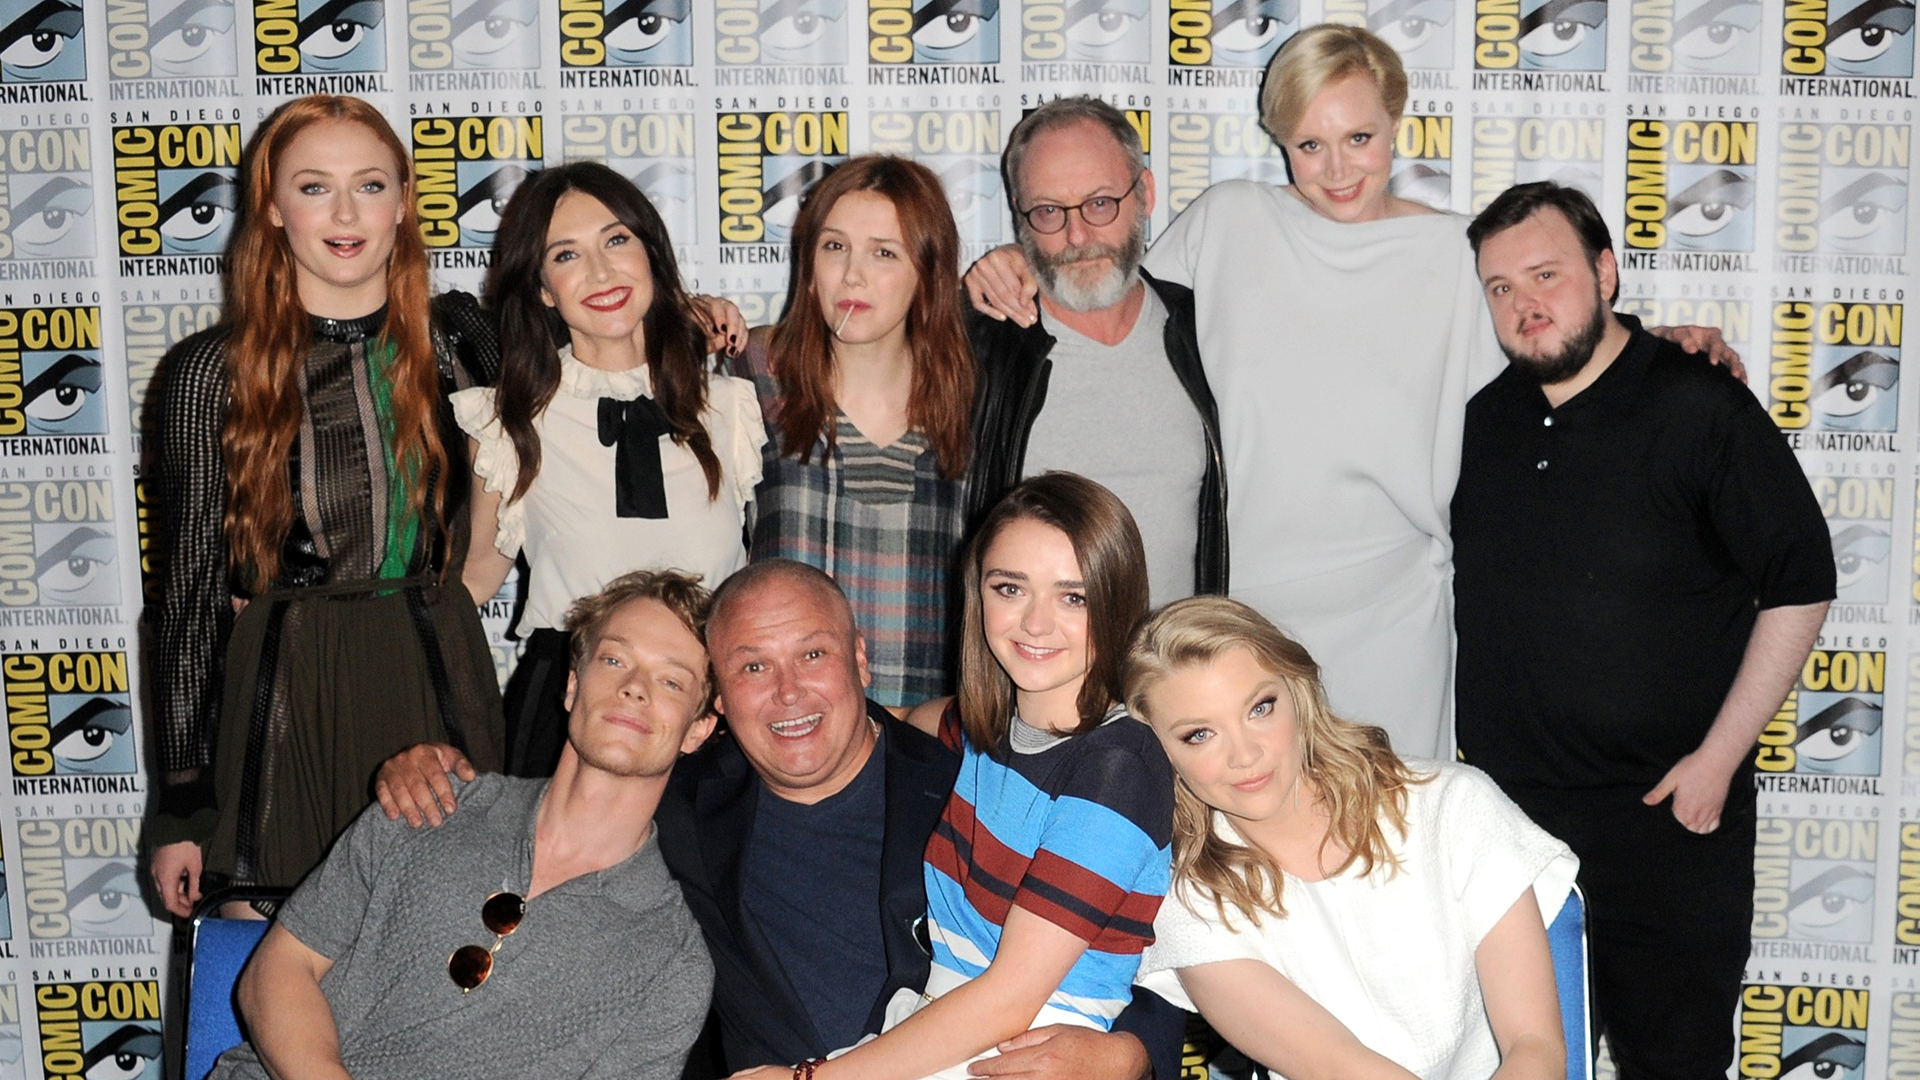 See the 'Game of Thrones' cast out of costume at Comic-Con ...